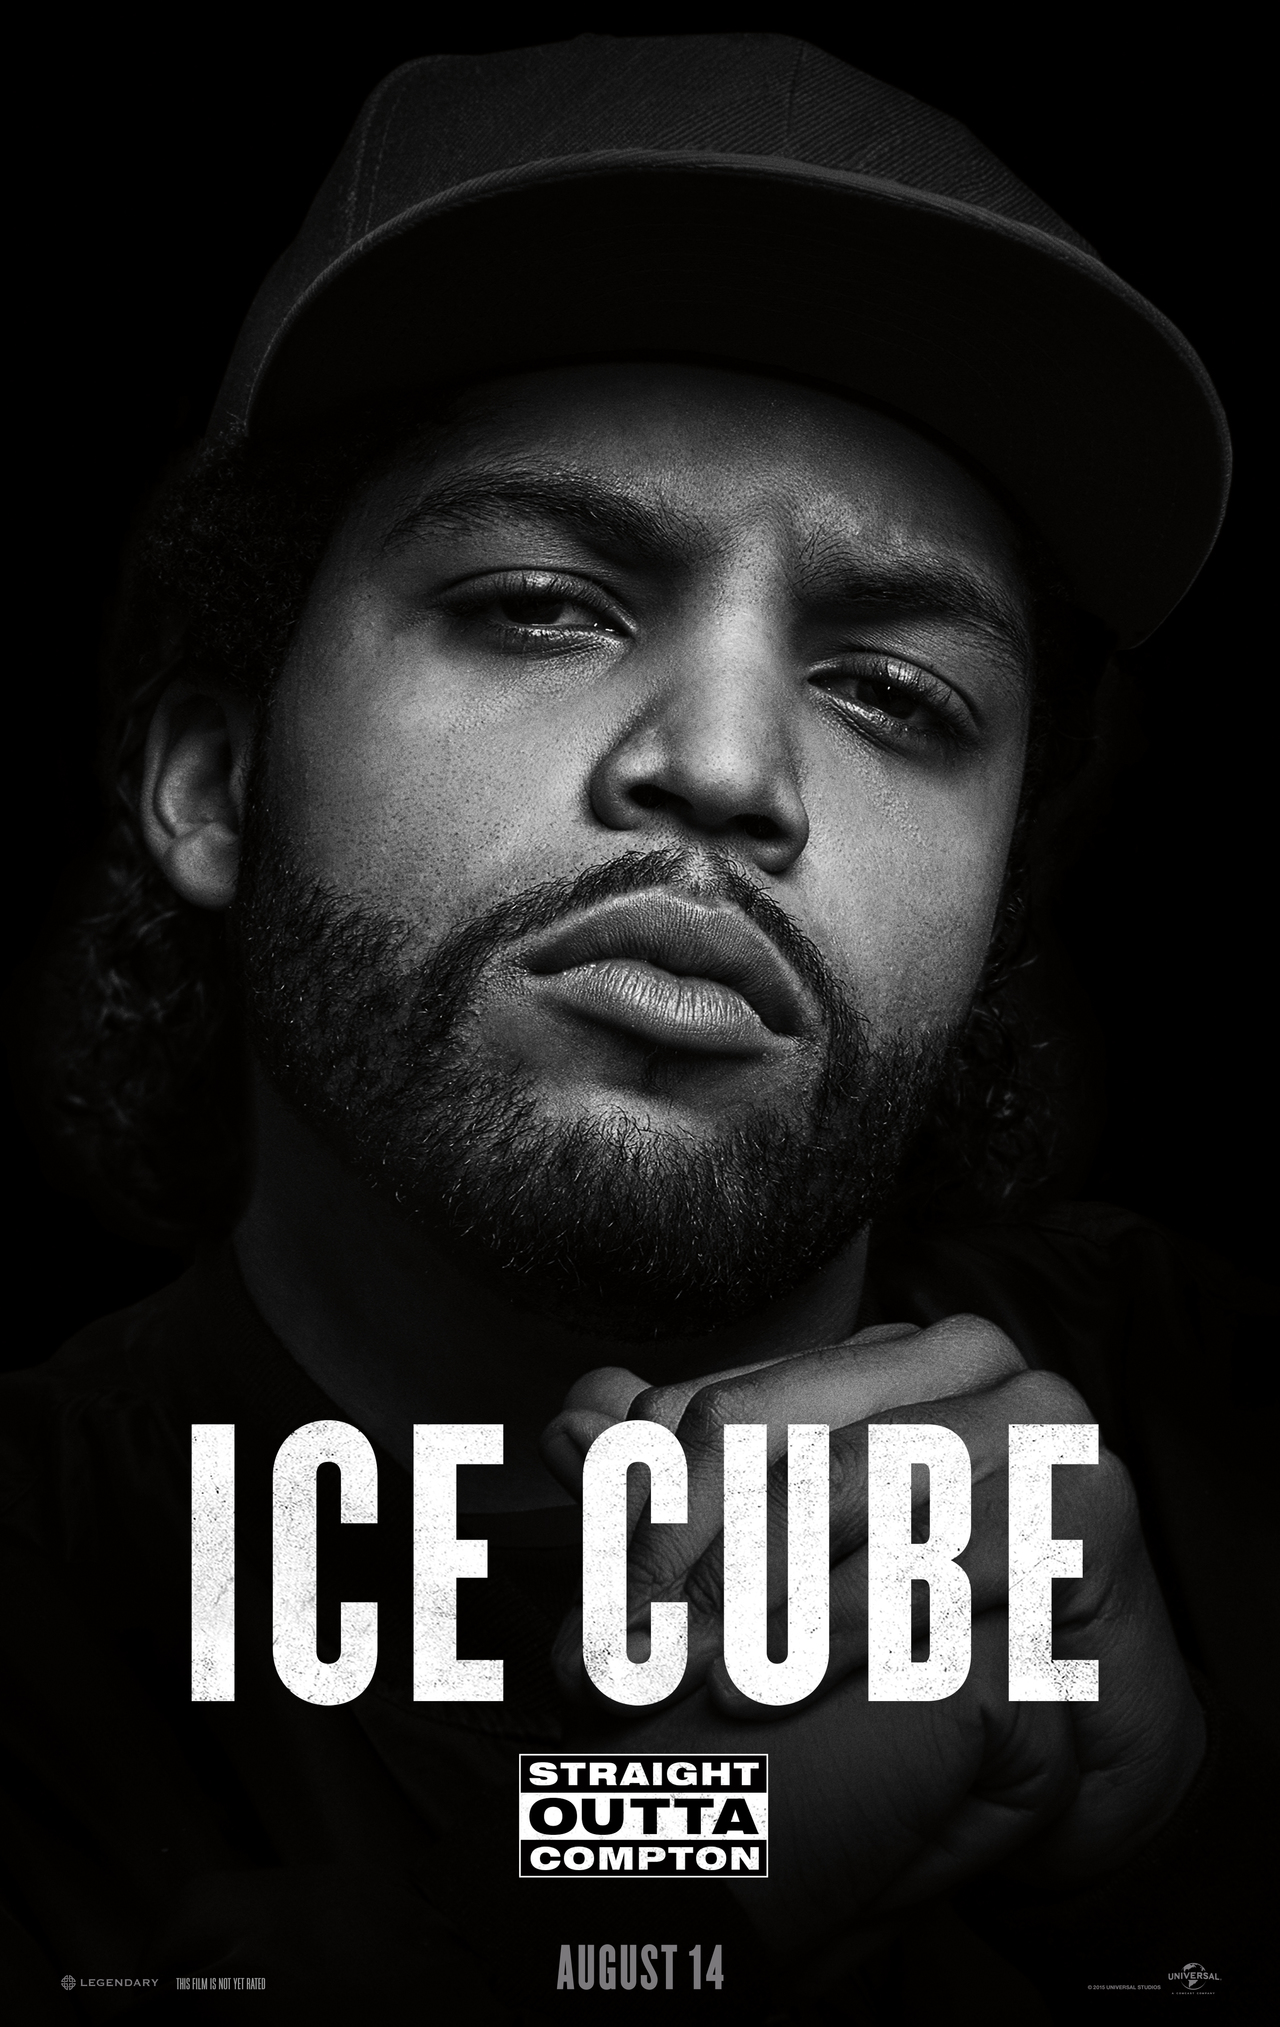 O'Shea Jackson, Jr. as Ice Cube